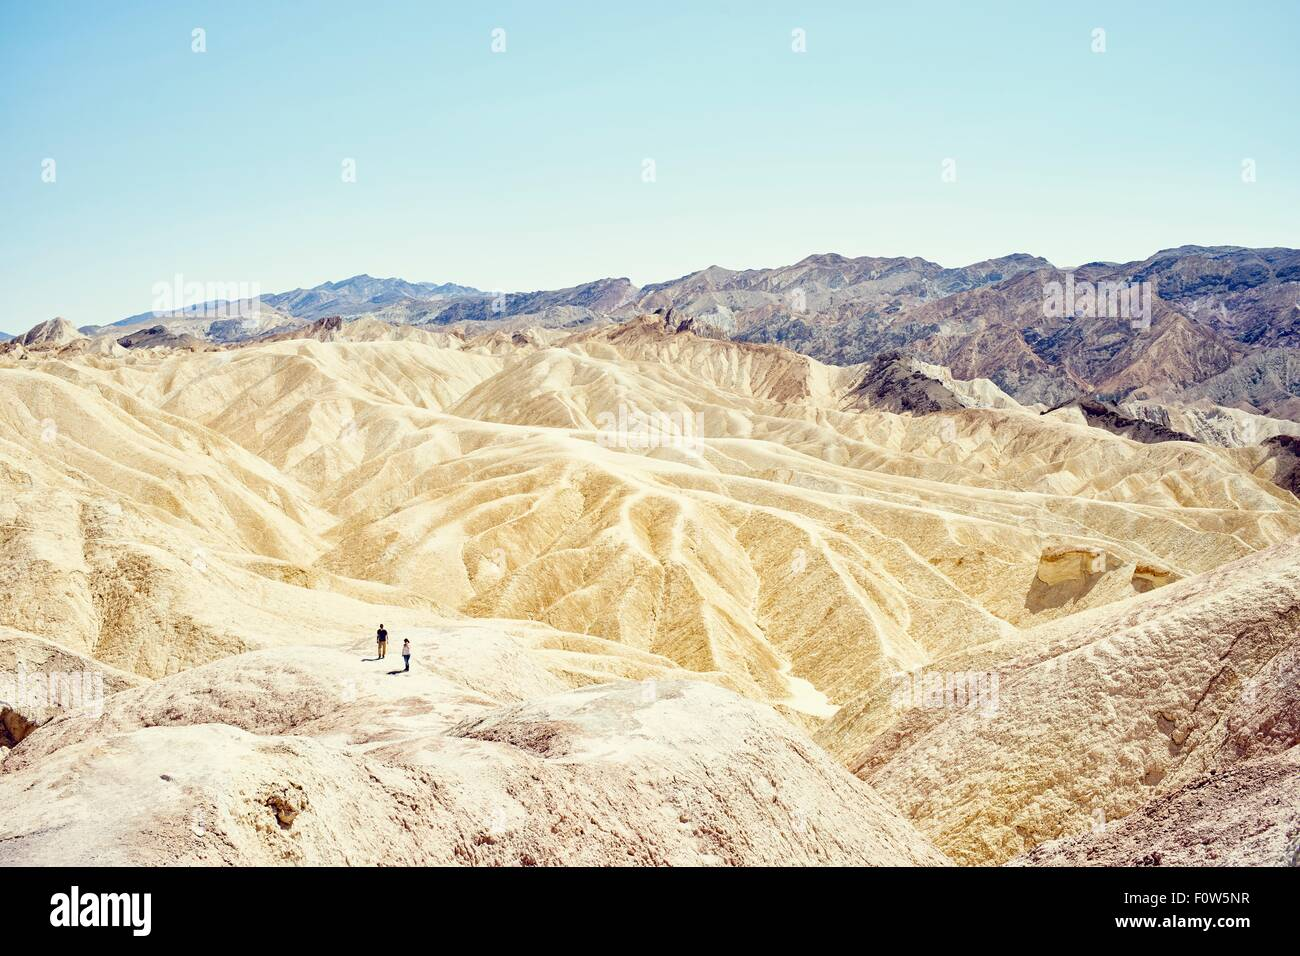 View of two tourists at Zabriskie Point, Death Valley, California, USA - Stock Image